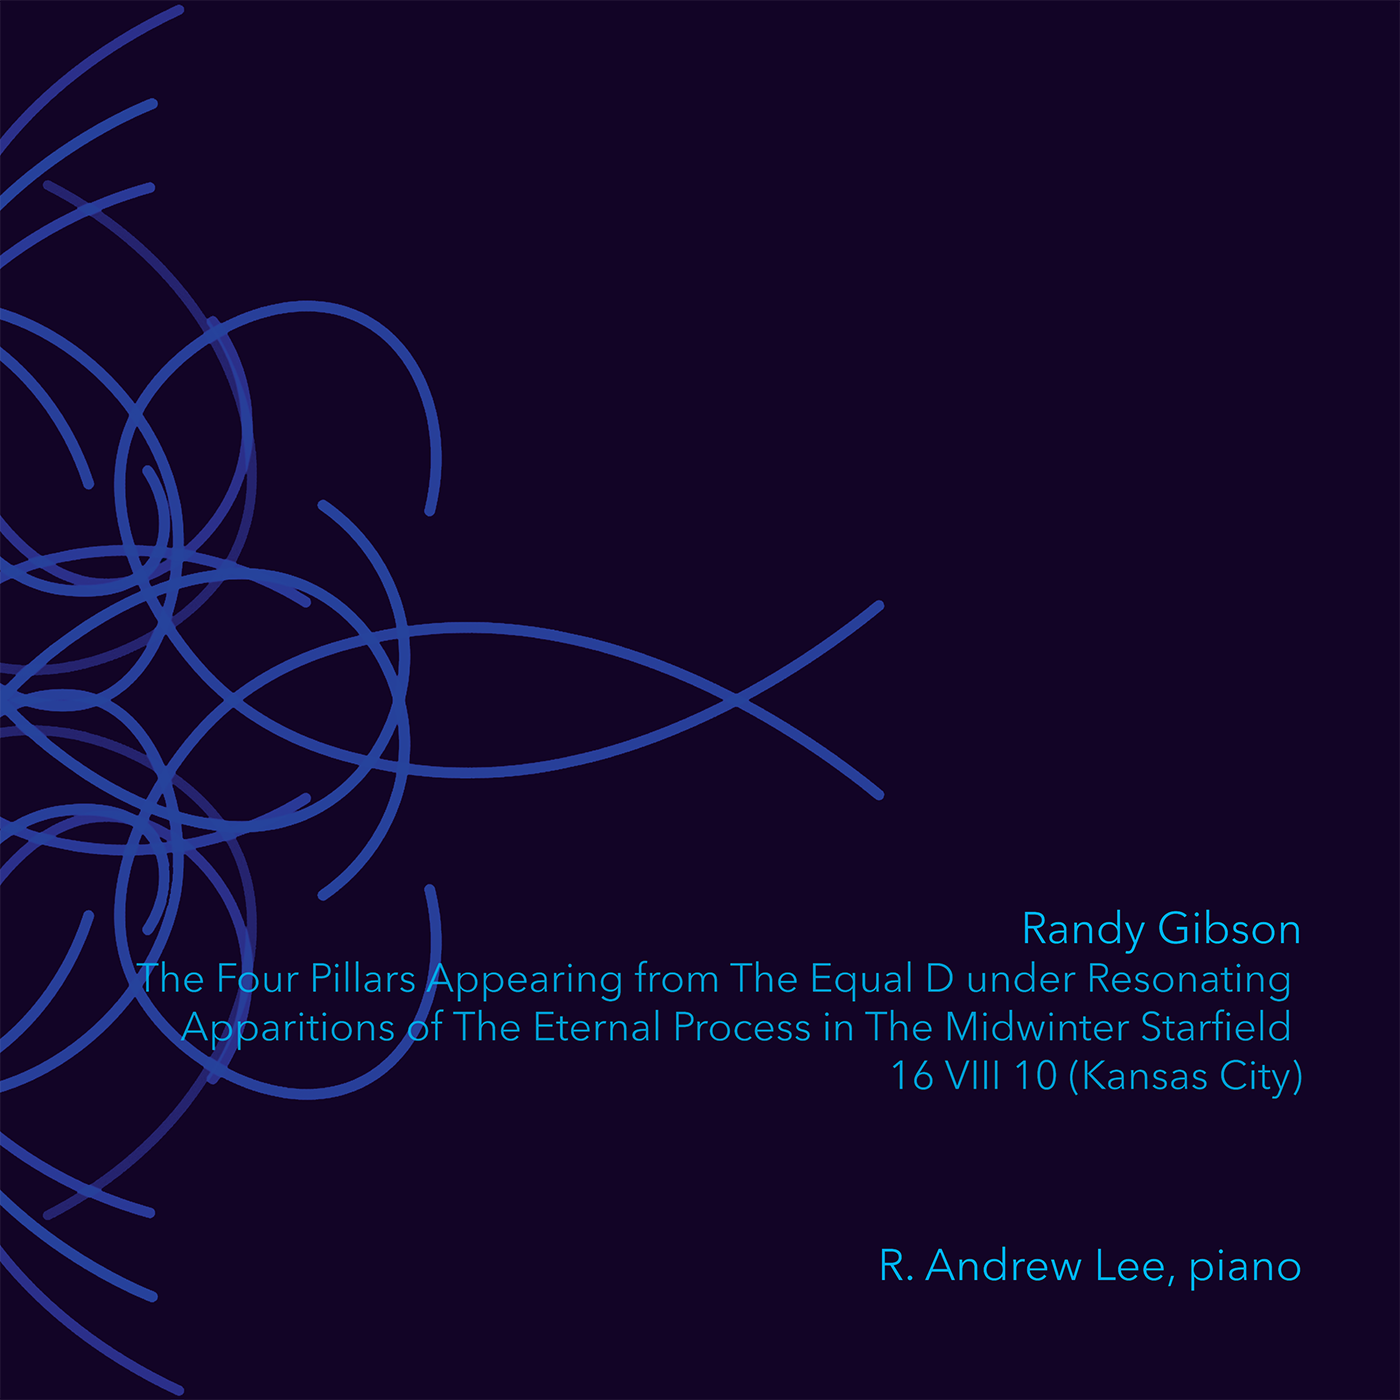 Randy Gibson's *The Four Pillars Appearing from The Equal D under Resonating Apparitions of The Eternal Process in The Midwinter Starfield 16 VIII 10 (Kansas City)*